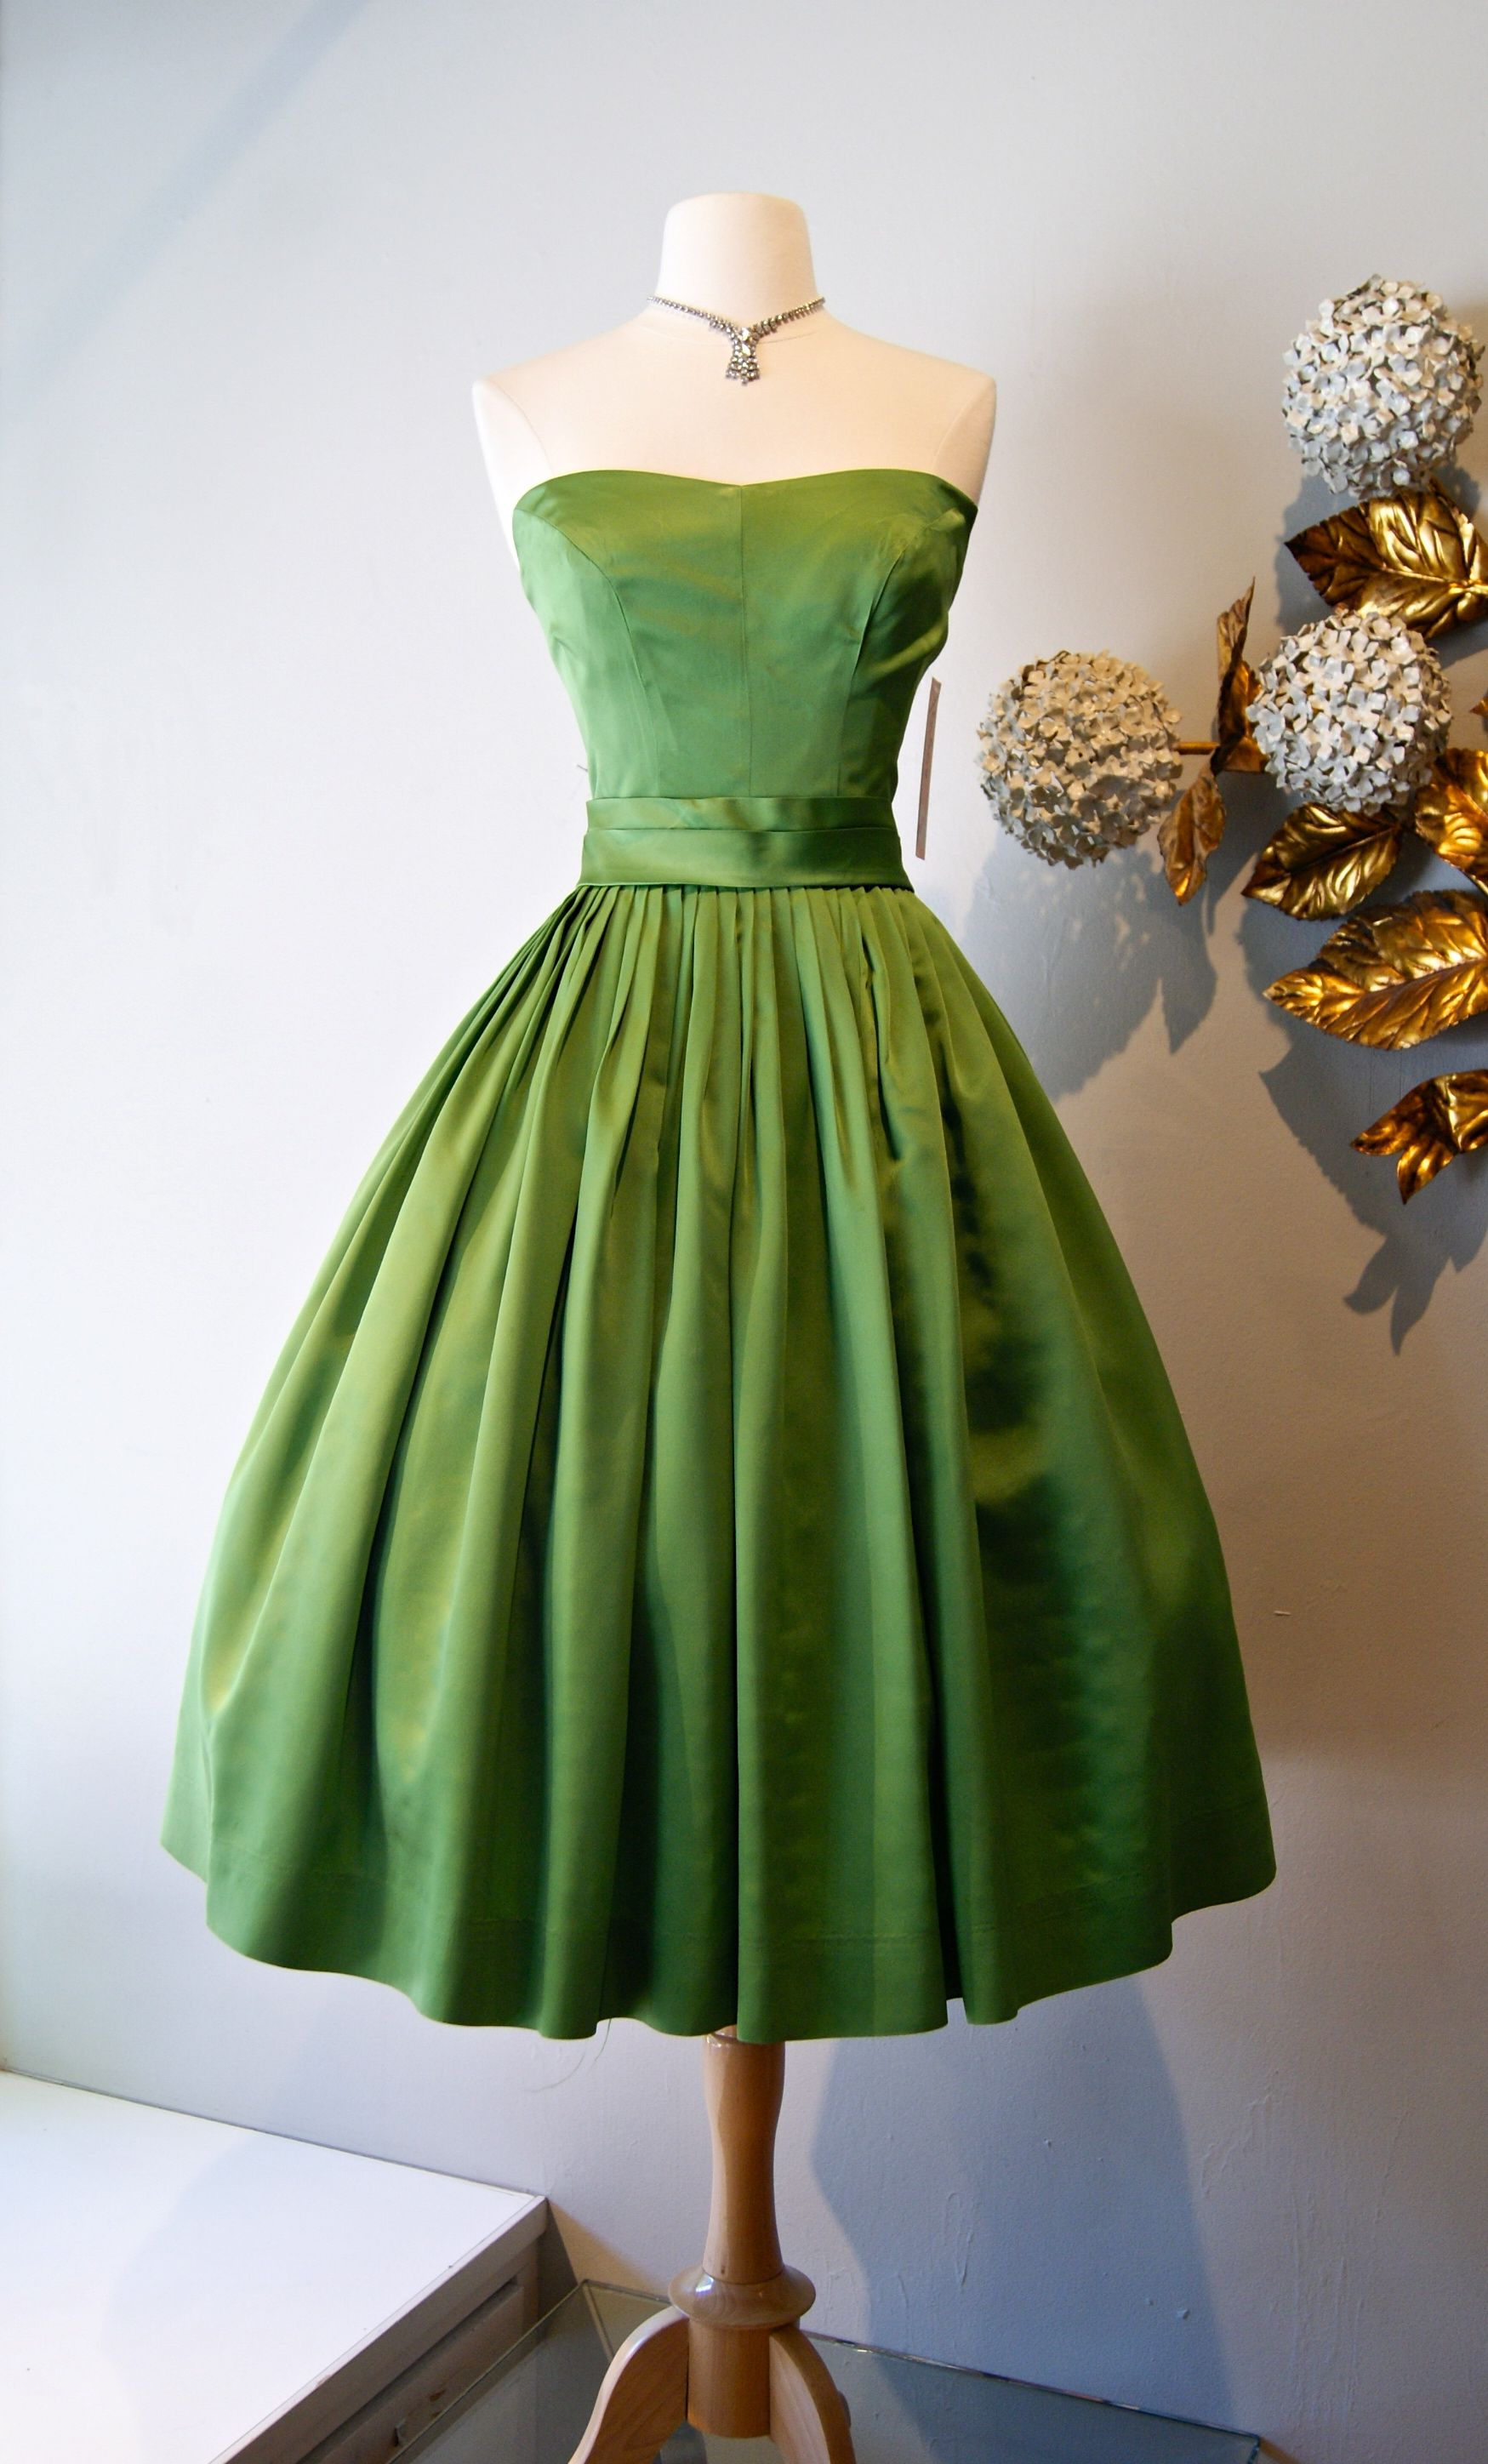 Vintage dress moss green us party dress xtabayvintage